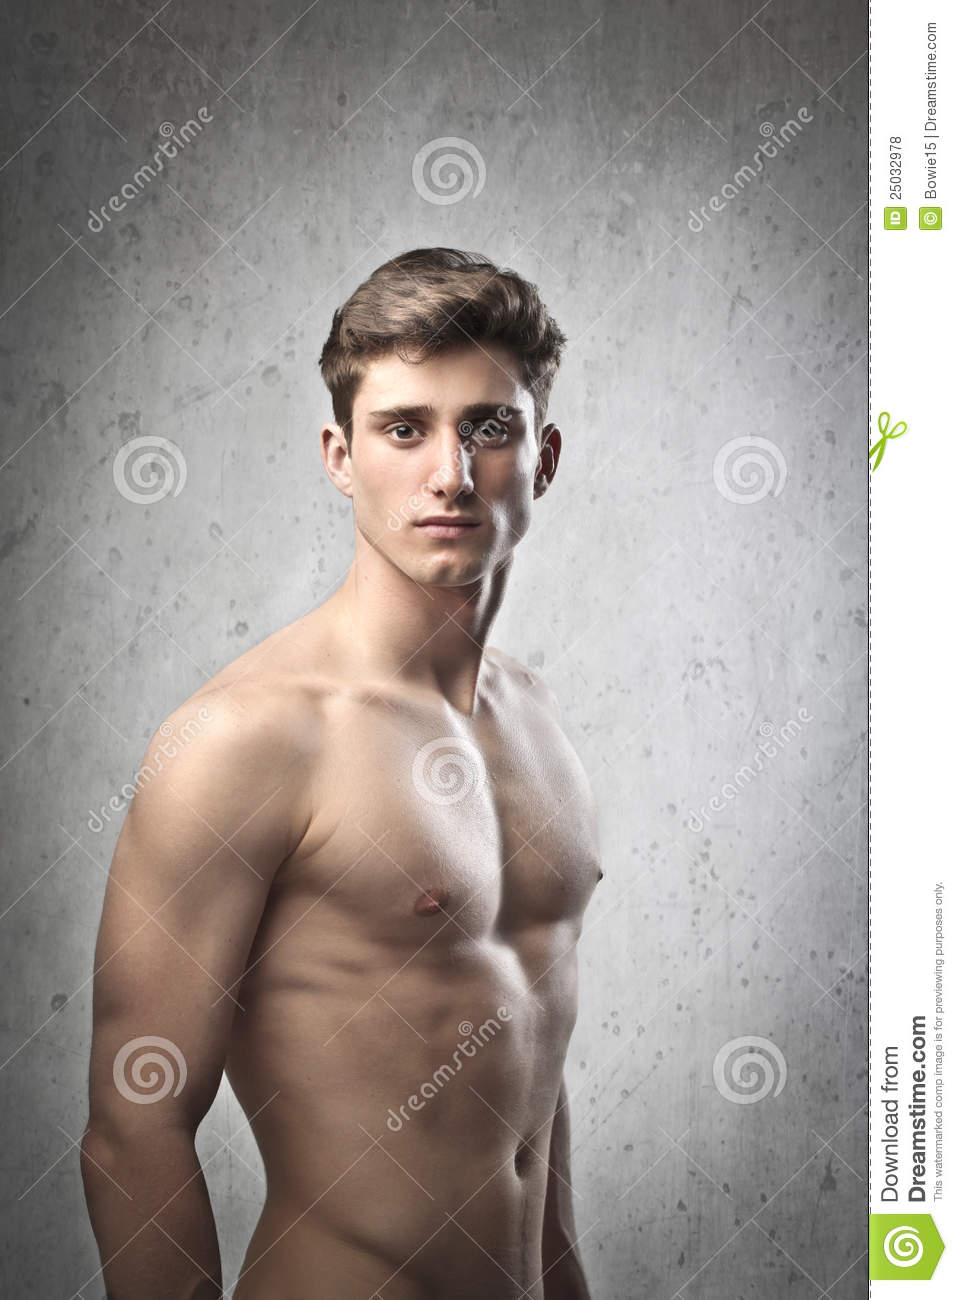 Well-built Man Royalty Free Stock Photos - Image: 25032978